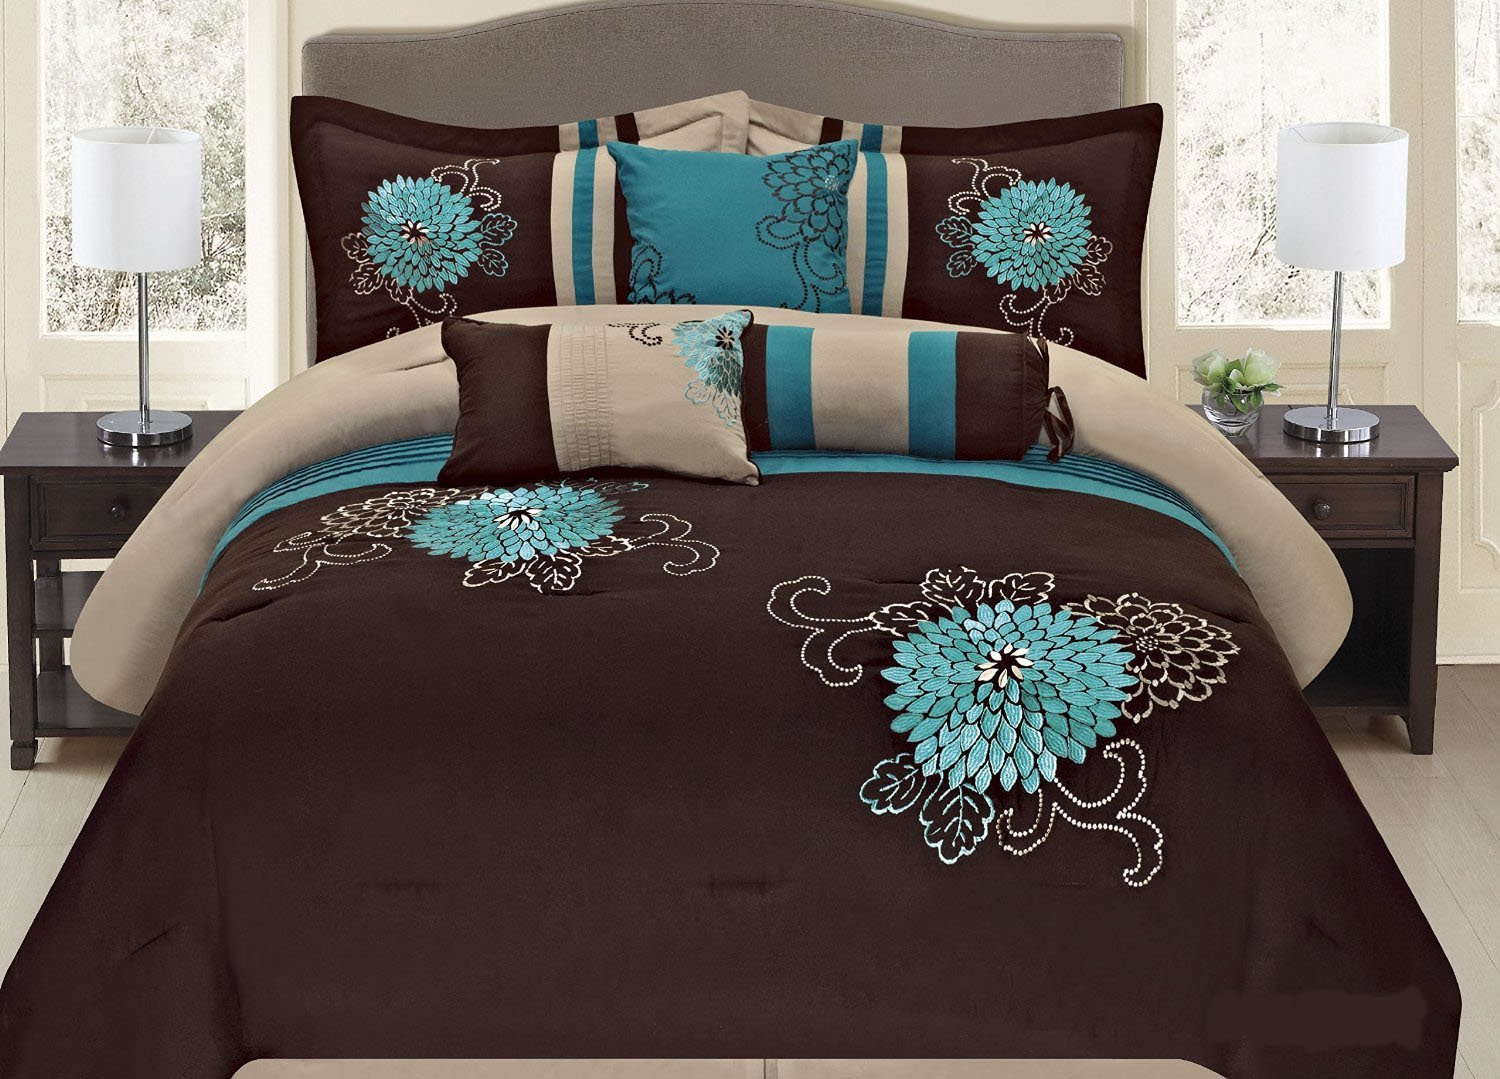 Fancy Collection 7-pc Embroidery Bedding Brown Turquoise Comforter Set